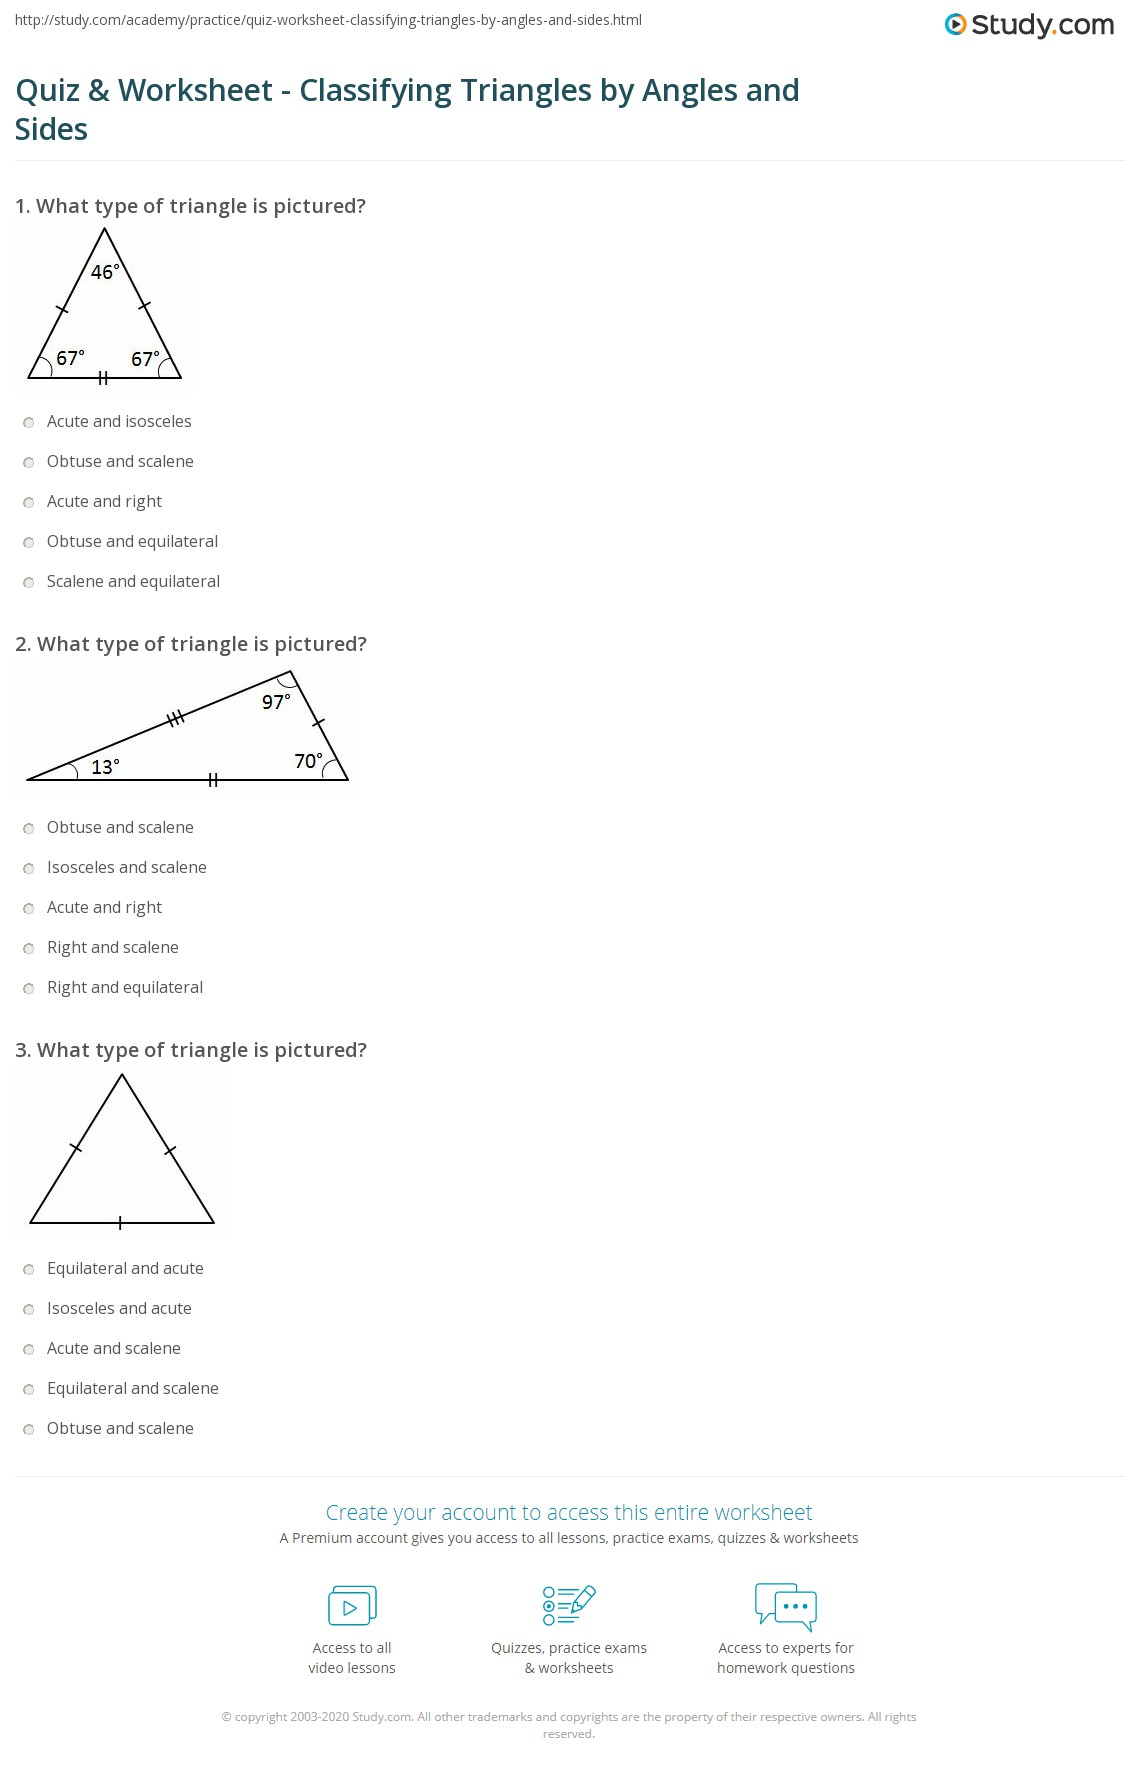 Free Worksheet Health Triangle Worksheet quiz worksheet classifying triangles by angles and sides print worksheet